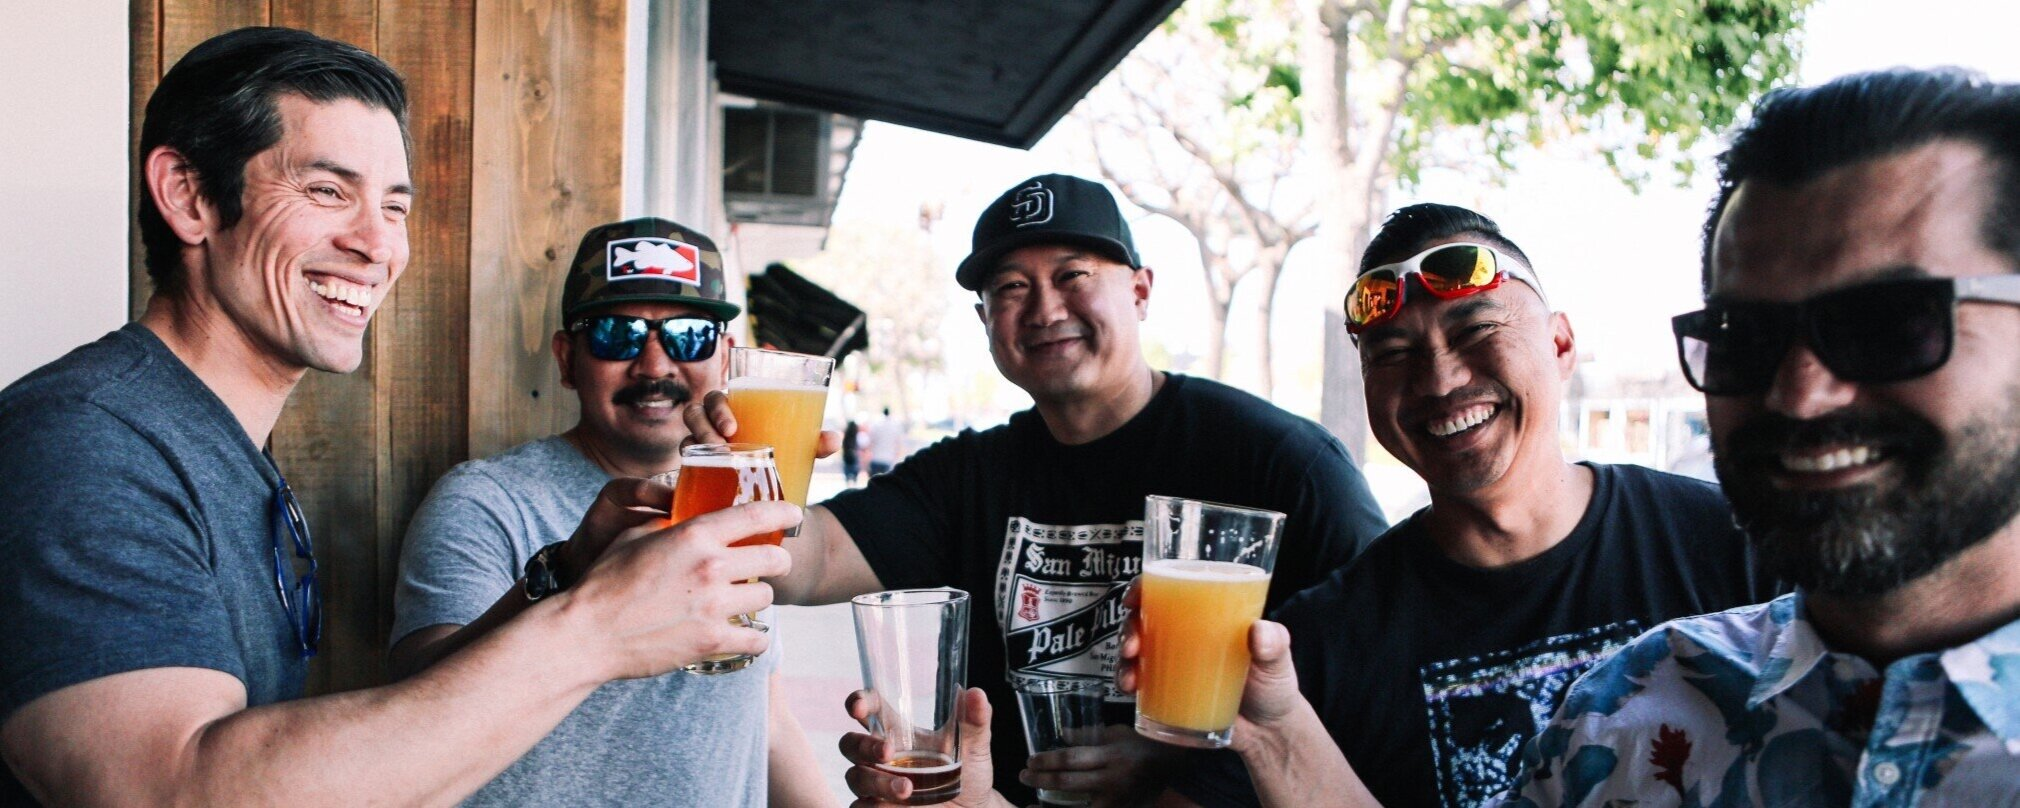 a-group-of-young-men-enjoying-adult-beverages-at-a-brewery-in-downtown_t20_mopmBE.jpg